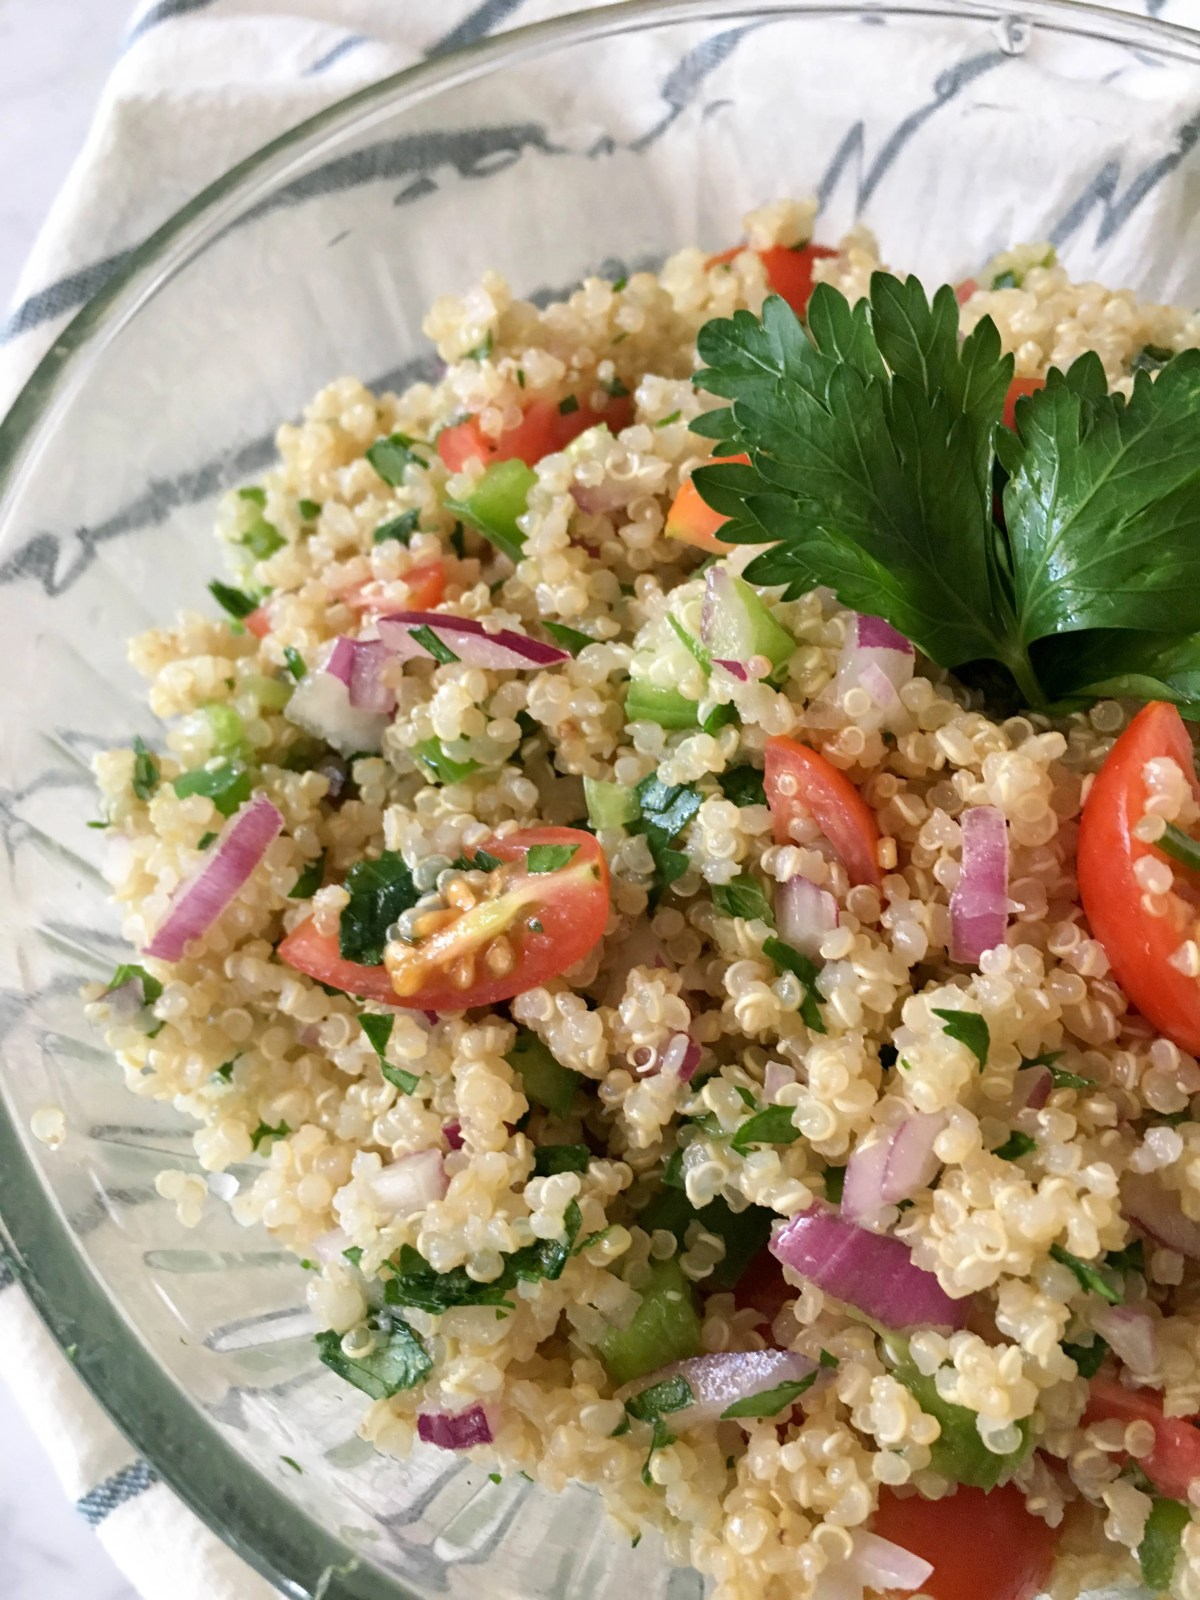 quinoa salad final product